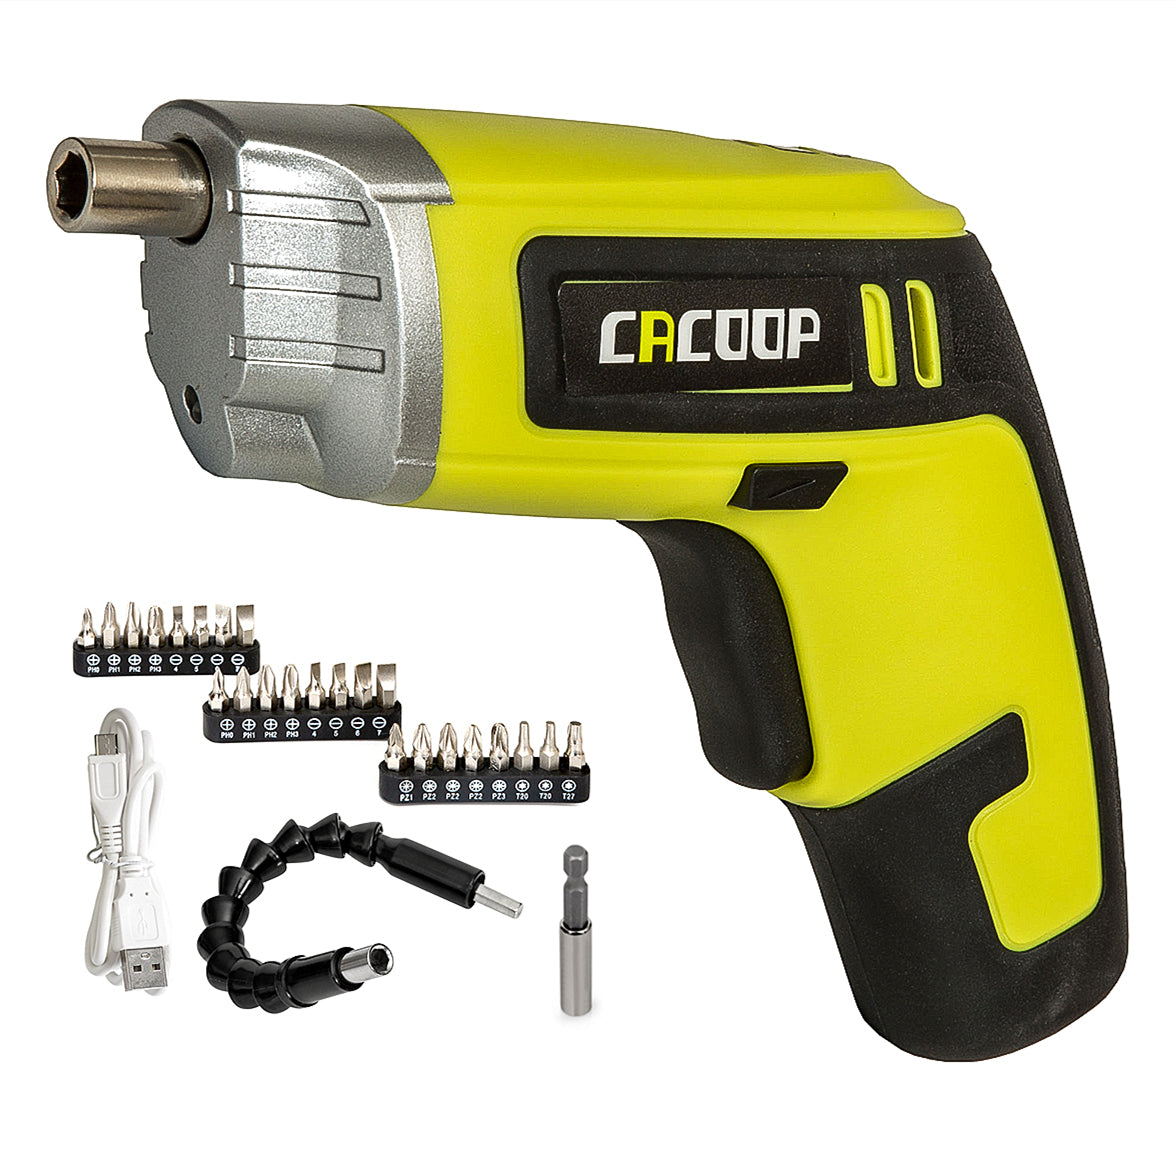 Electric Cordless Screwdriver Set Rechargeable 4V - CACOOP